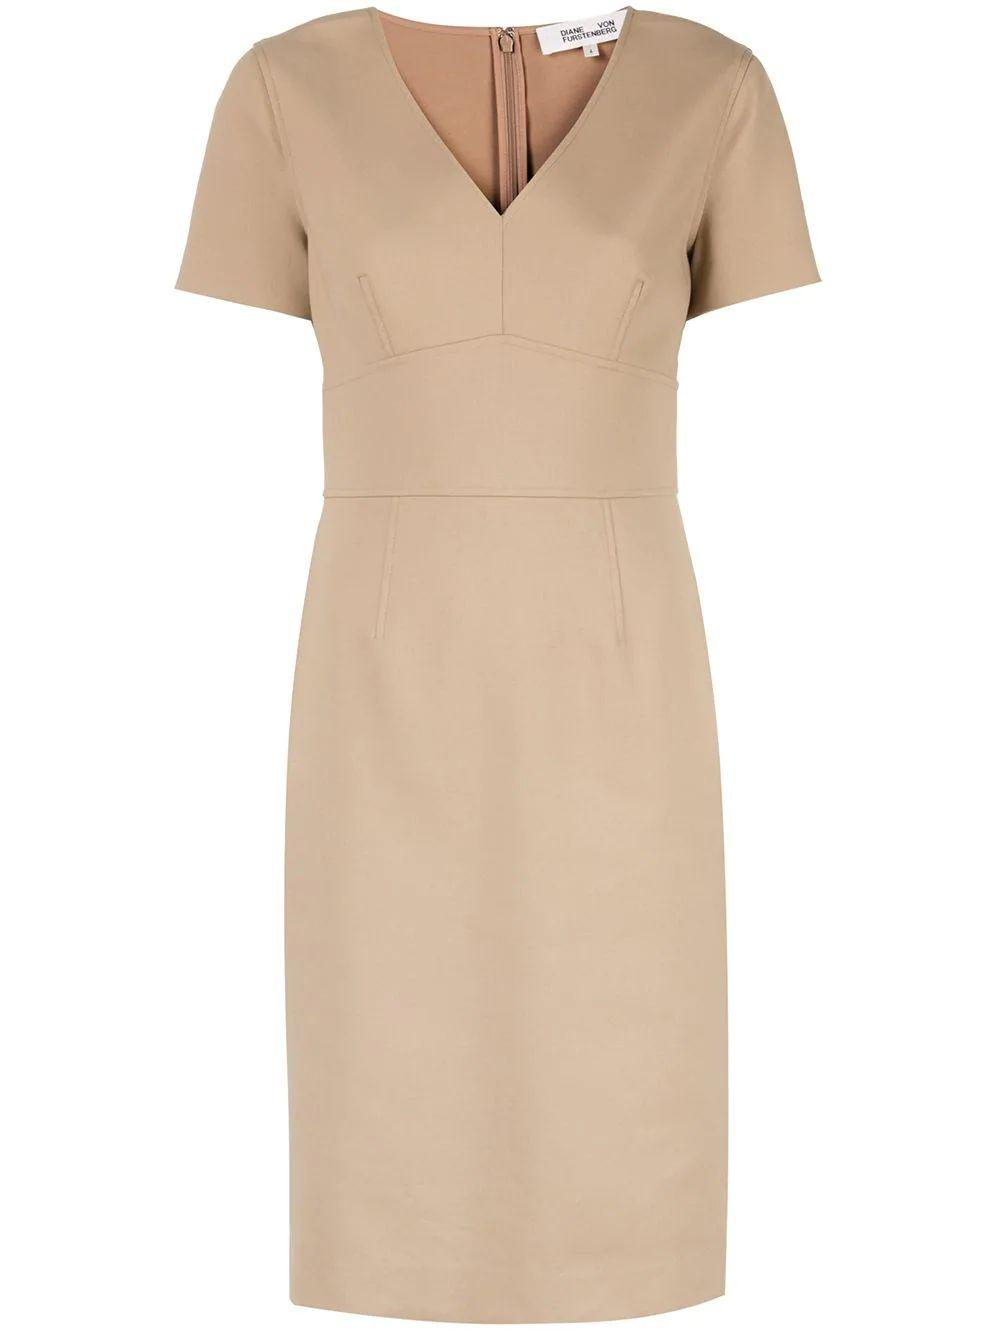 Klara V Neck Short Sleeve Sheath Dress